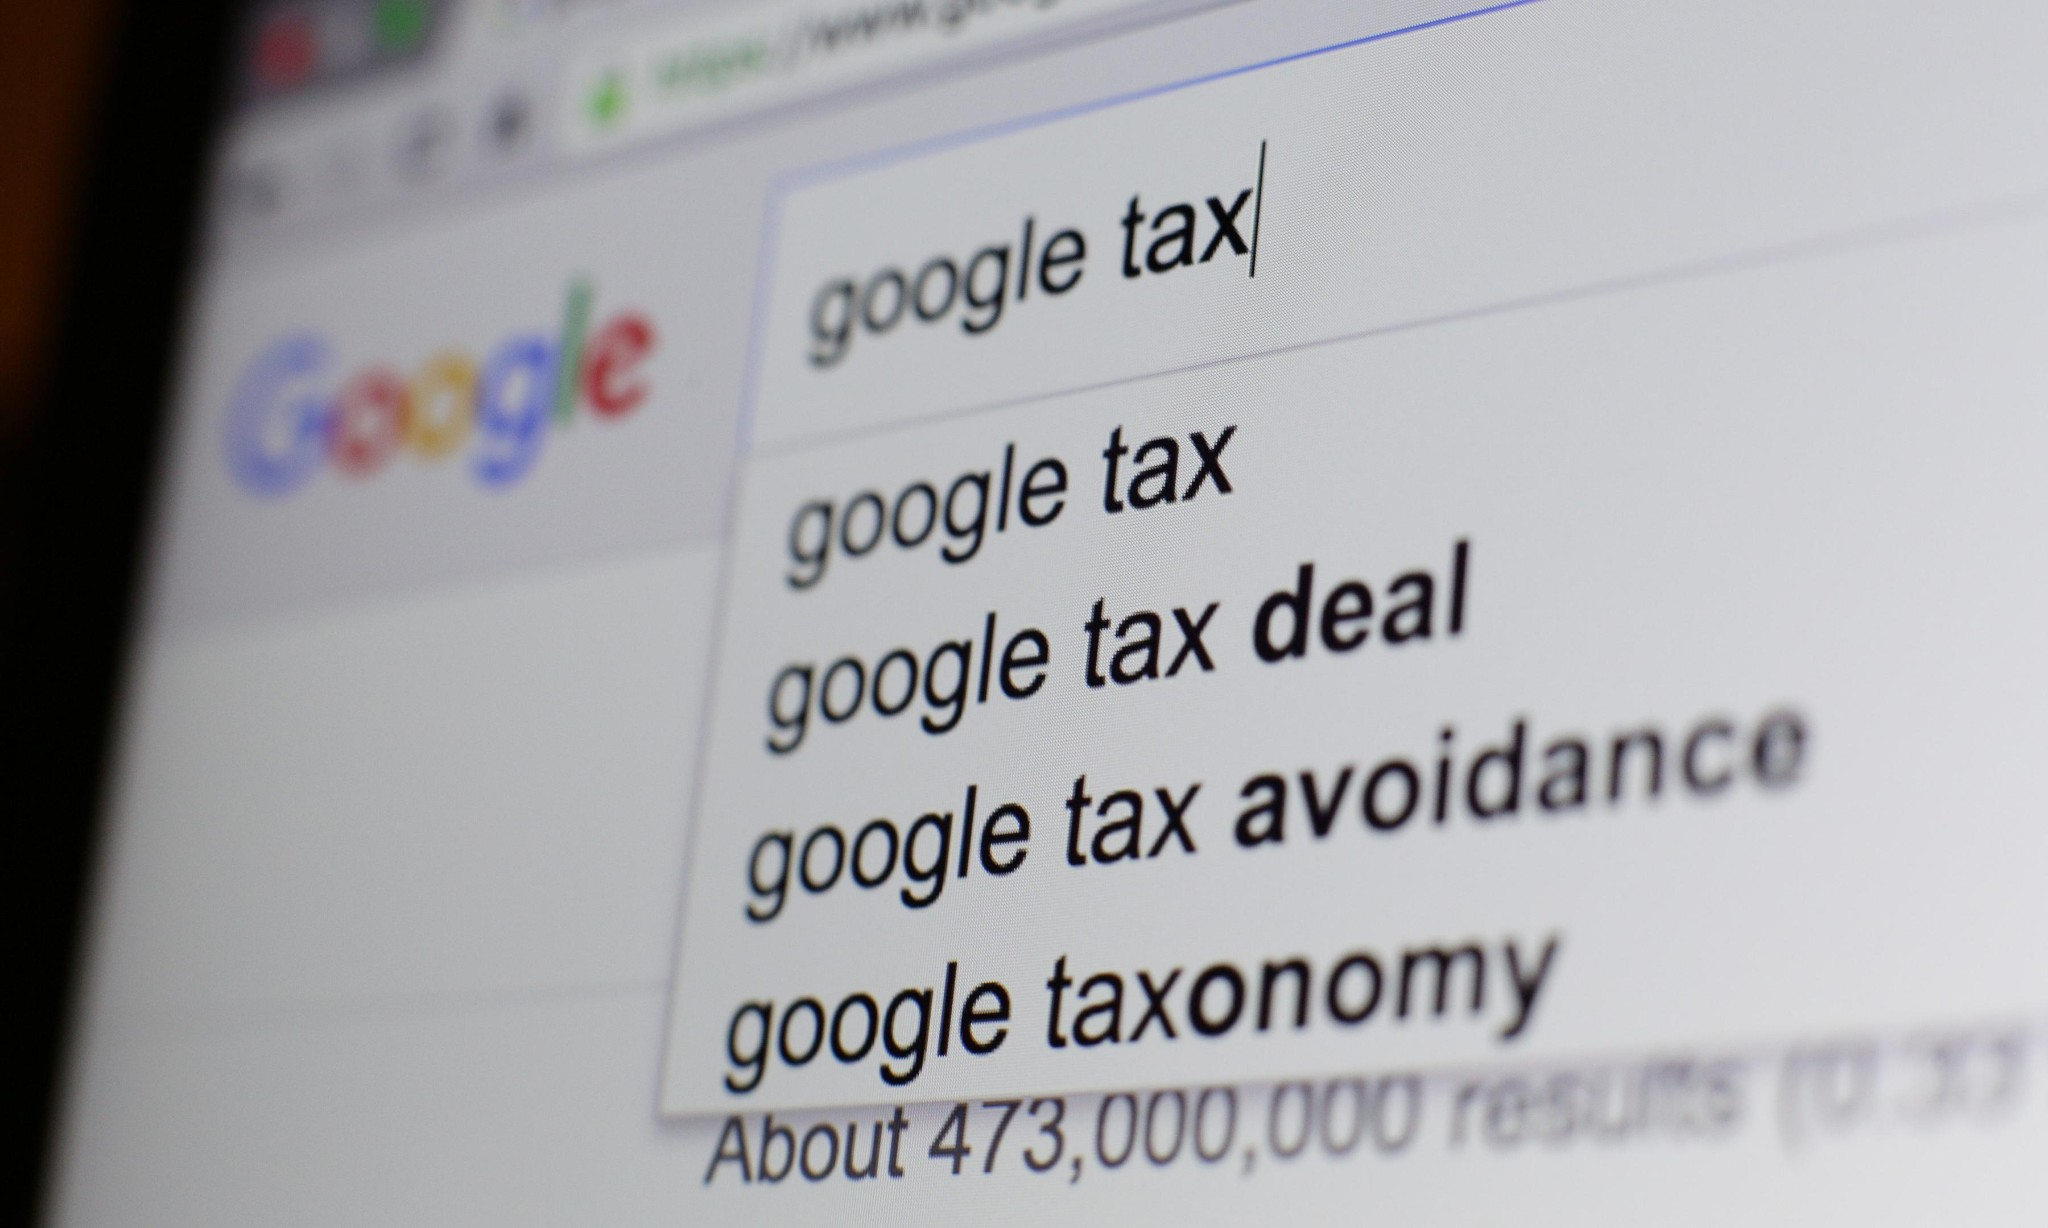 Google pays €47m in tax in Ireland on €22bn sales revenue